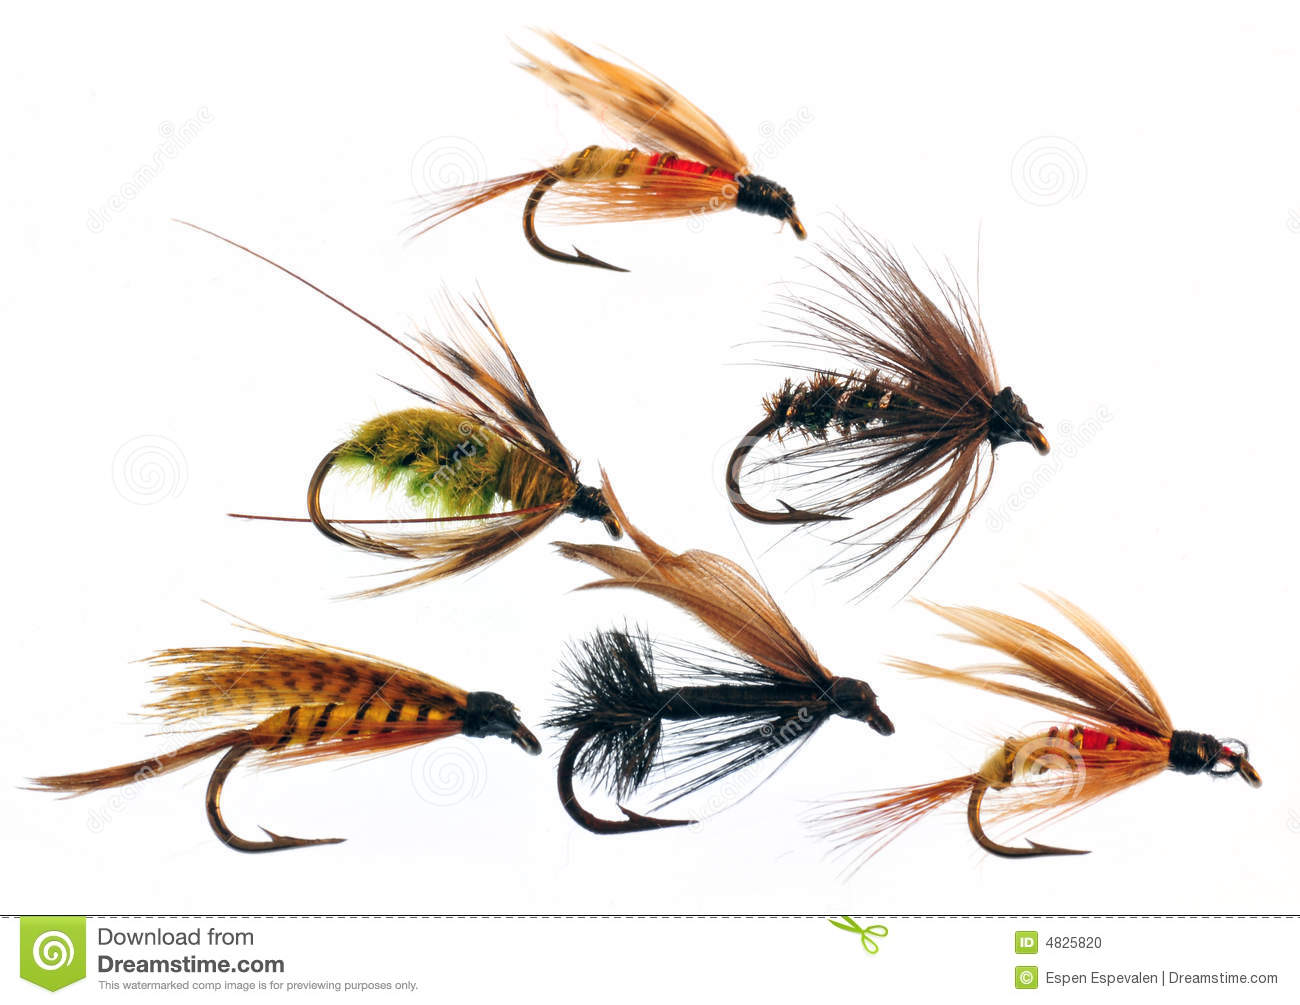 Fly fishing lure drawing images for Fly fishing lures